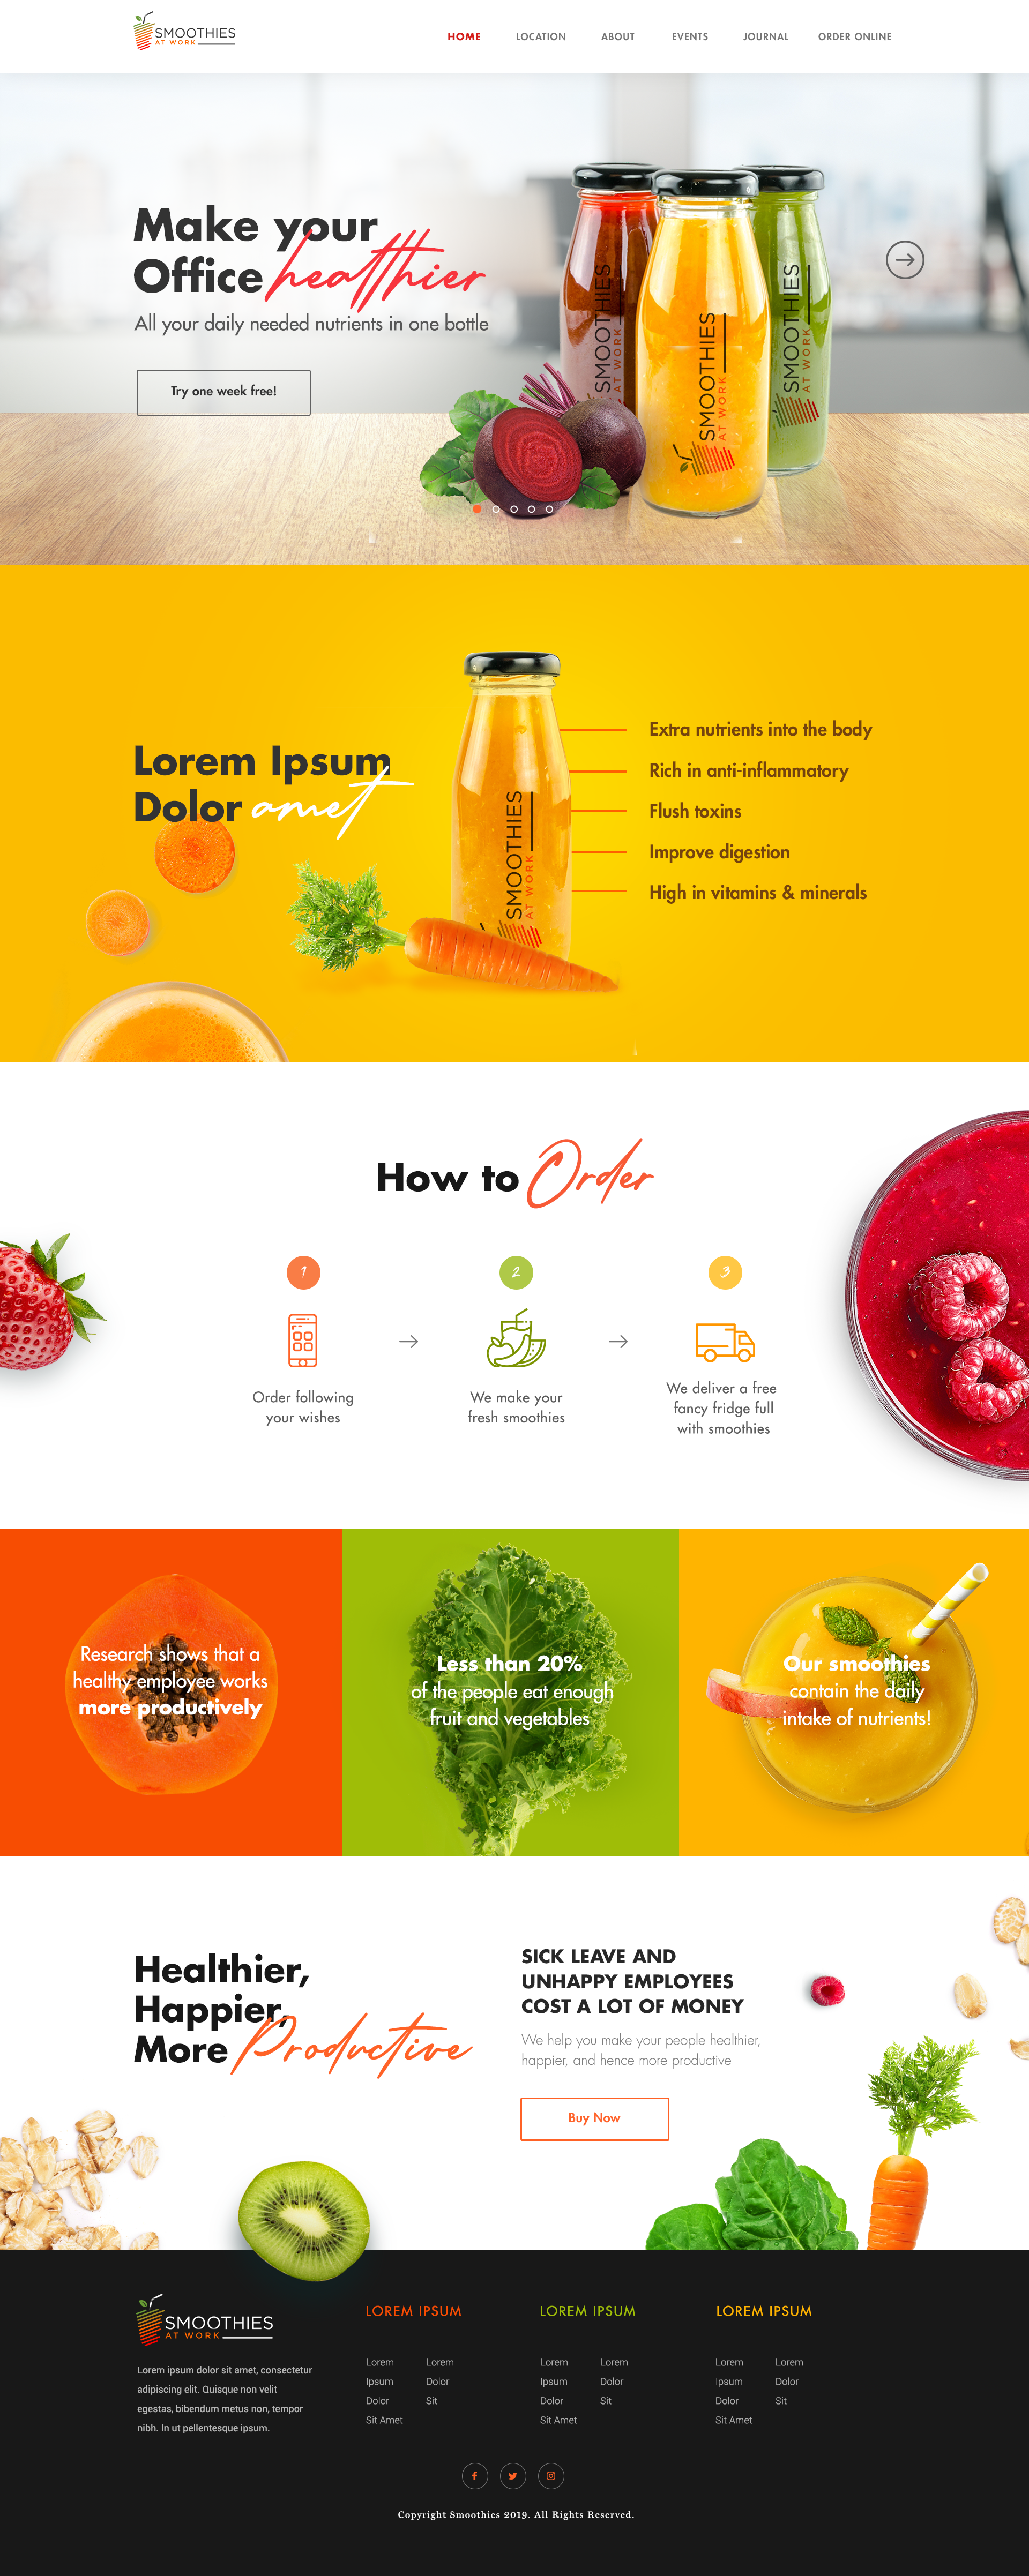 NEW Design needed to rule over Amsterdam with Smoothies